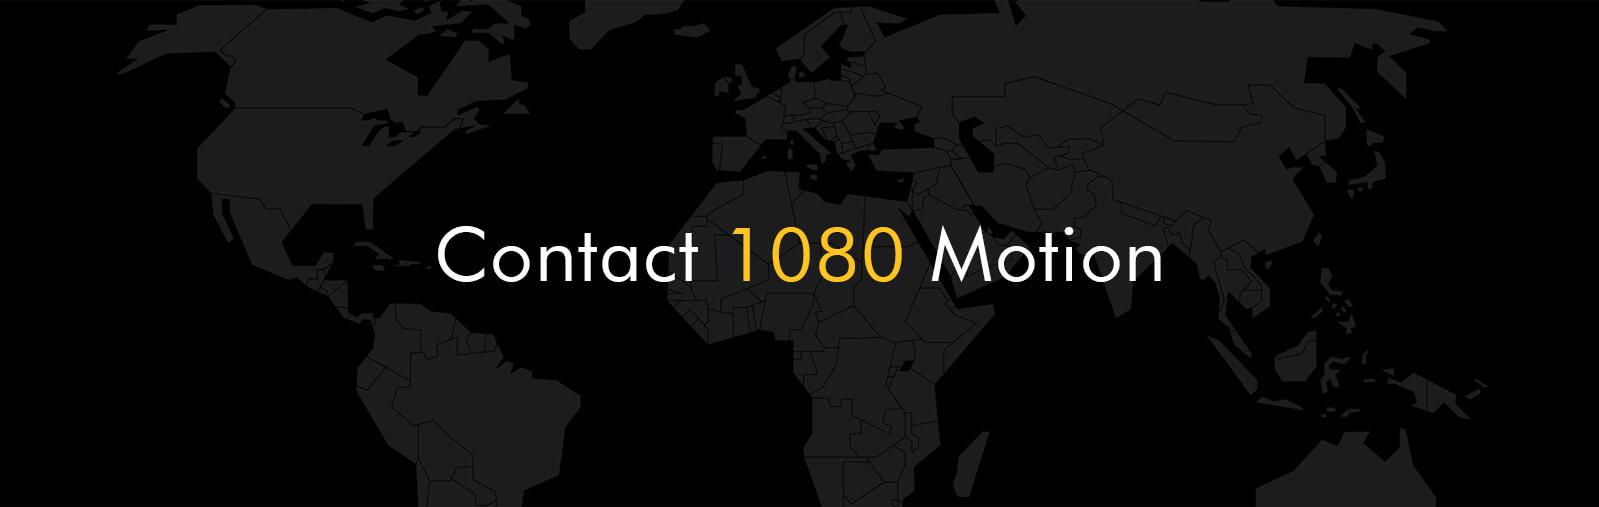 Contact 1080 Motion